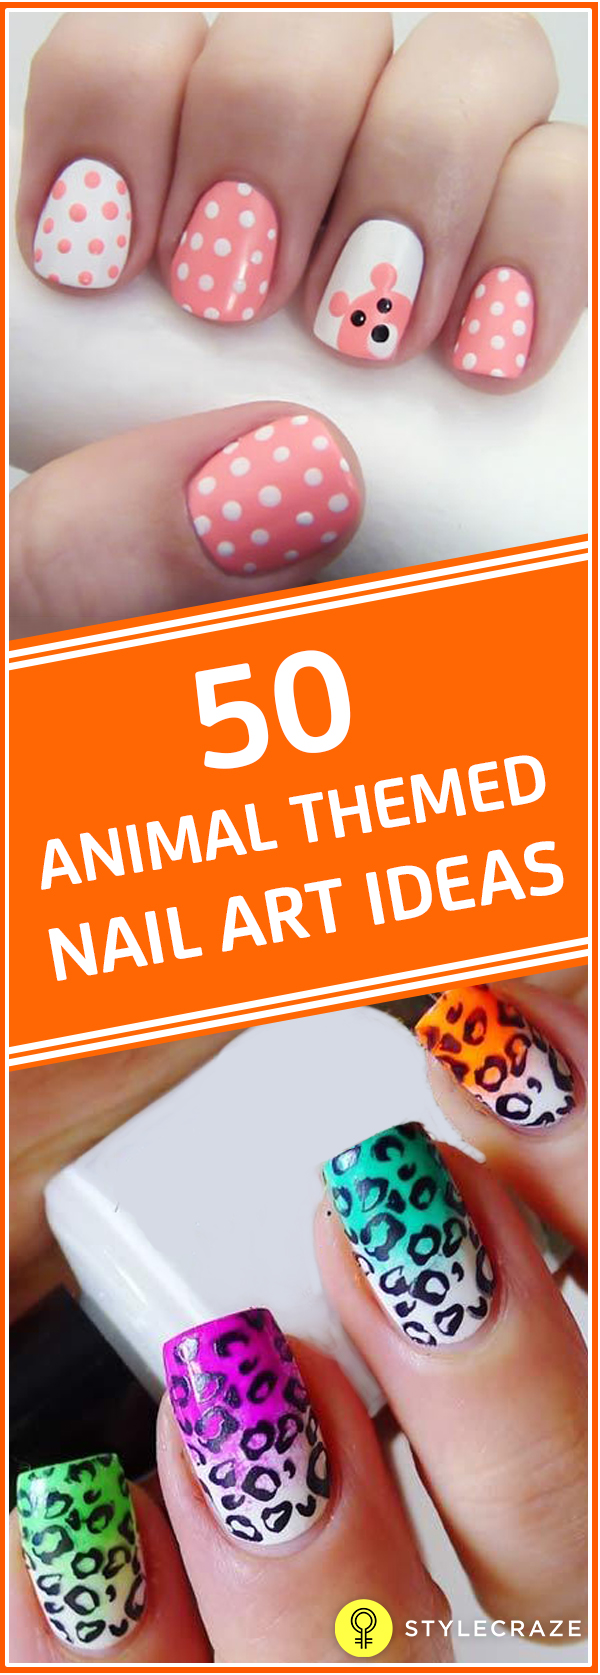 50 Animal Themed nail art ideas